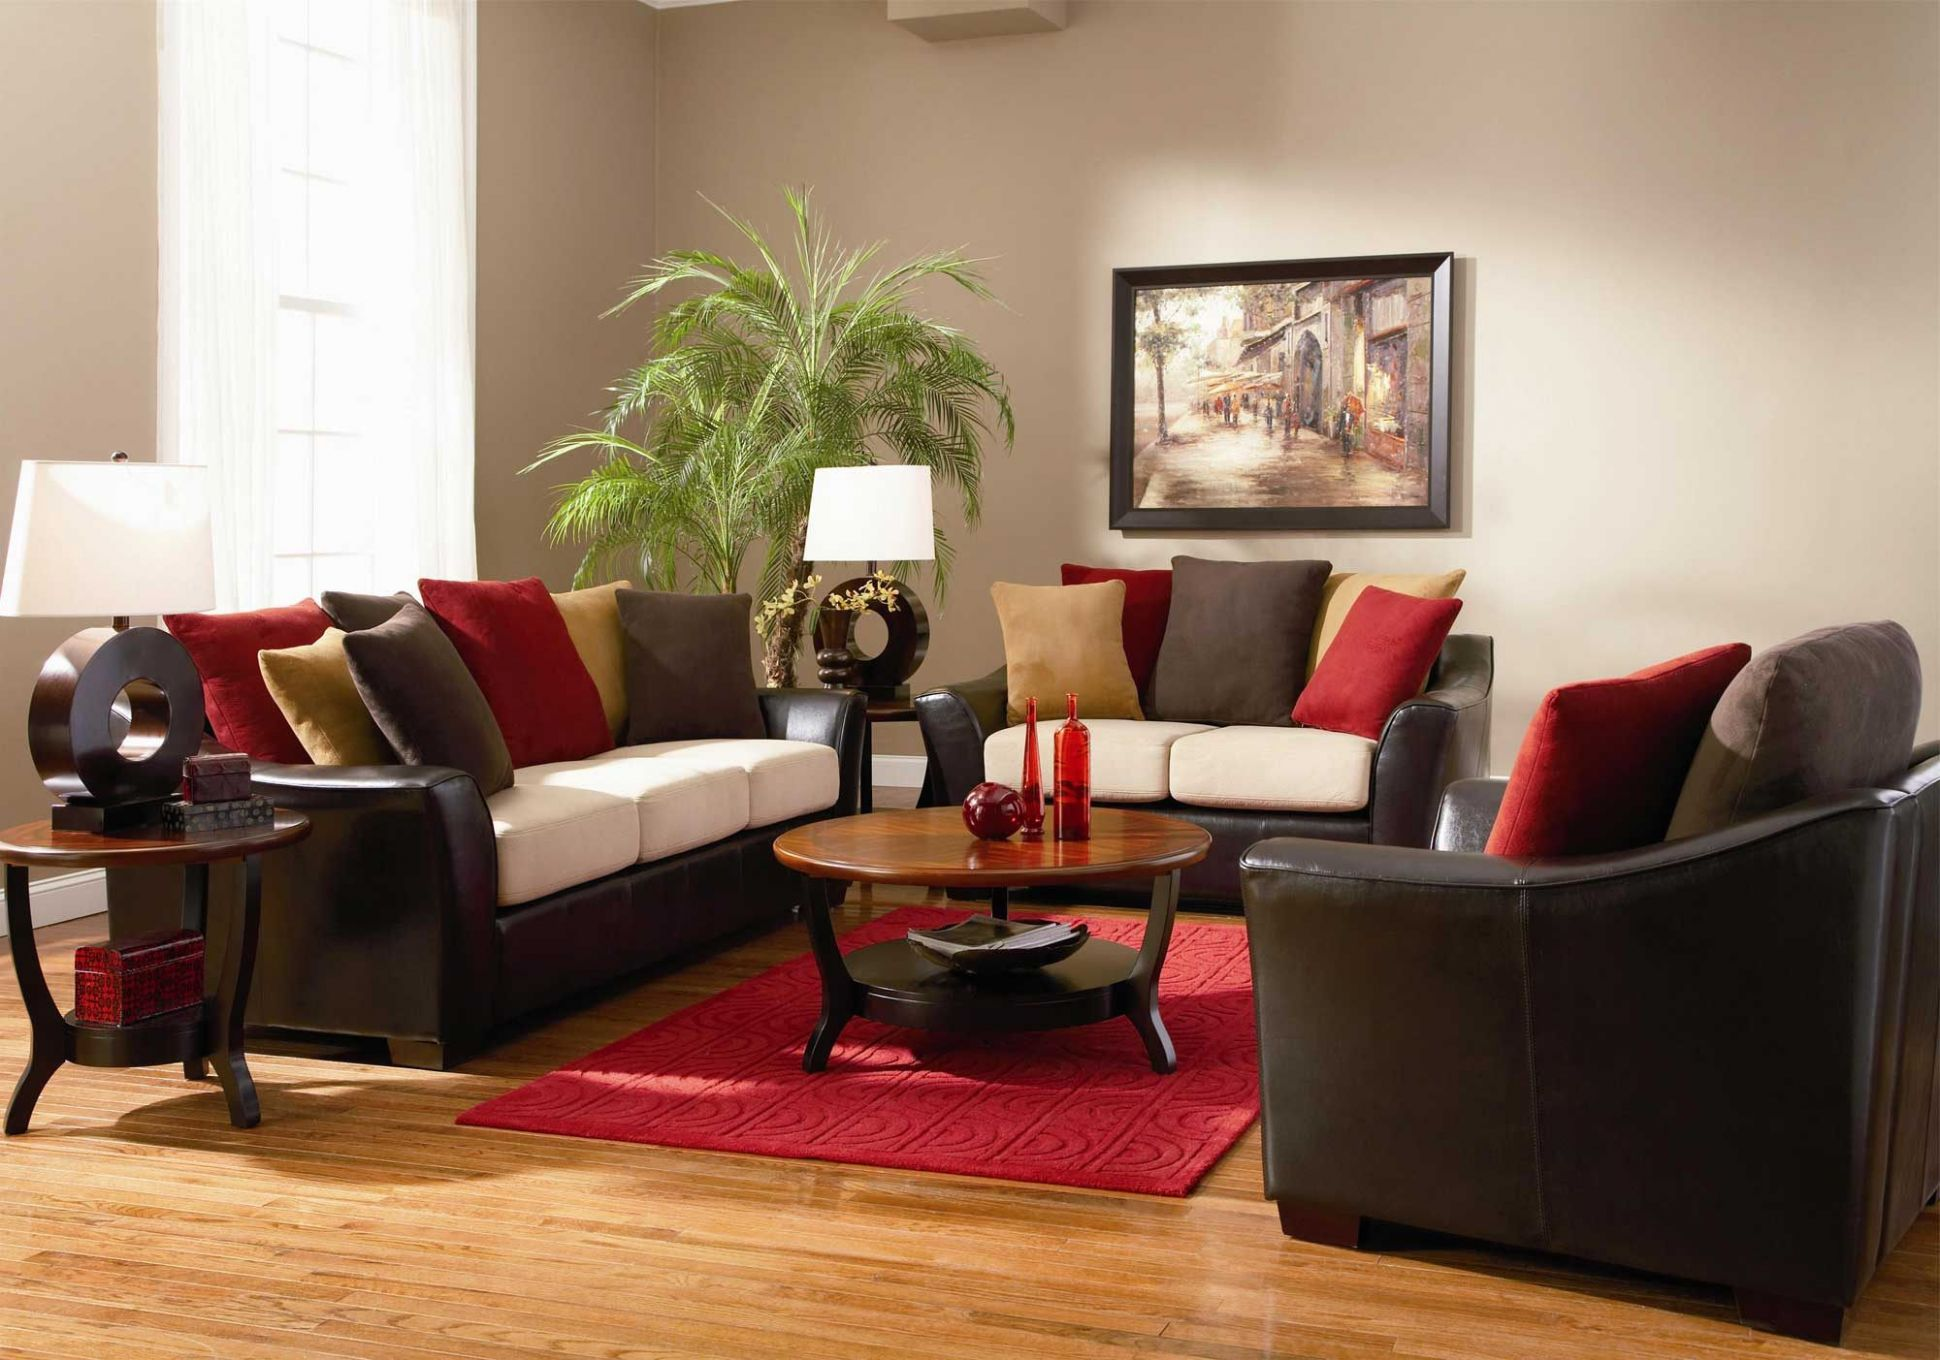 Living Room Ideas With Tan Walls Light Couch Greg Color Interior ..